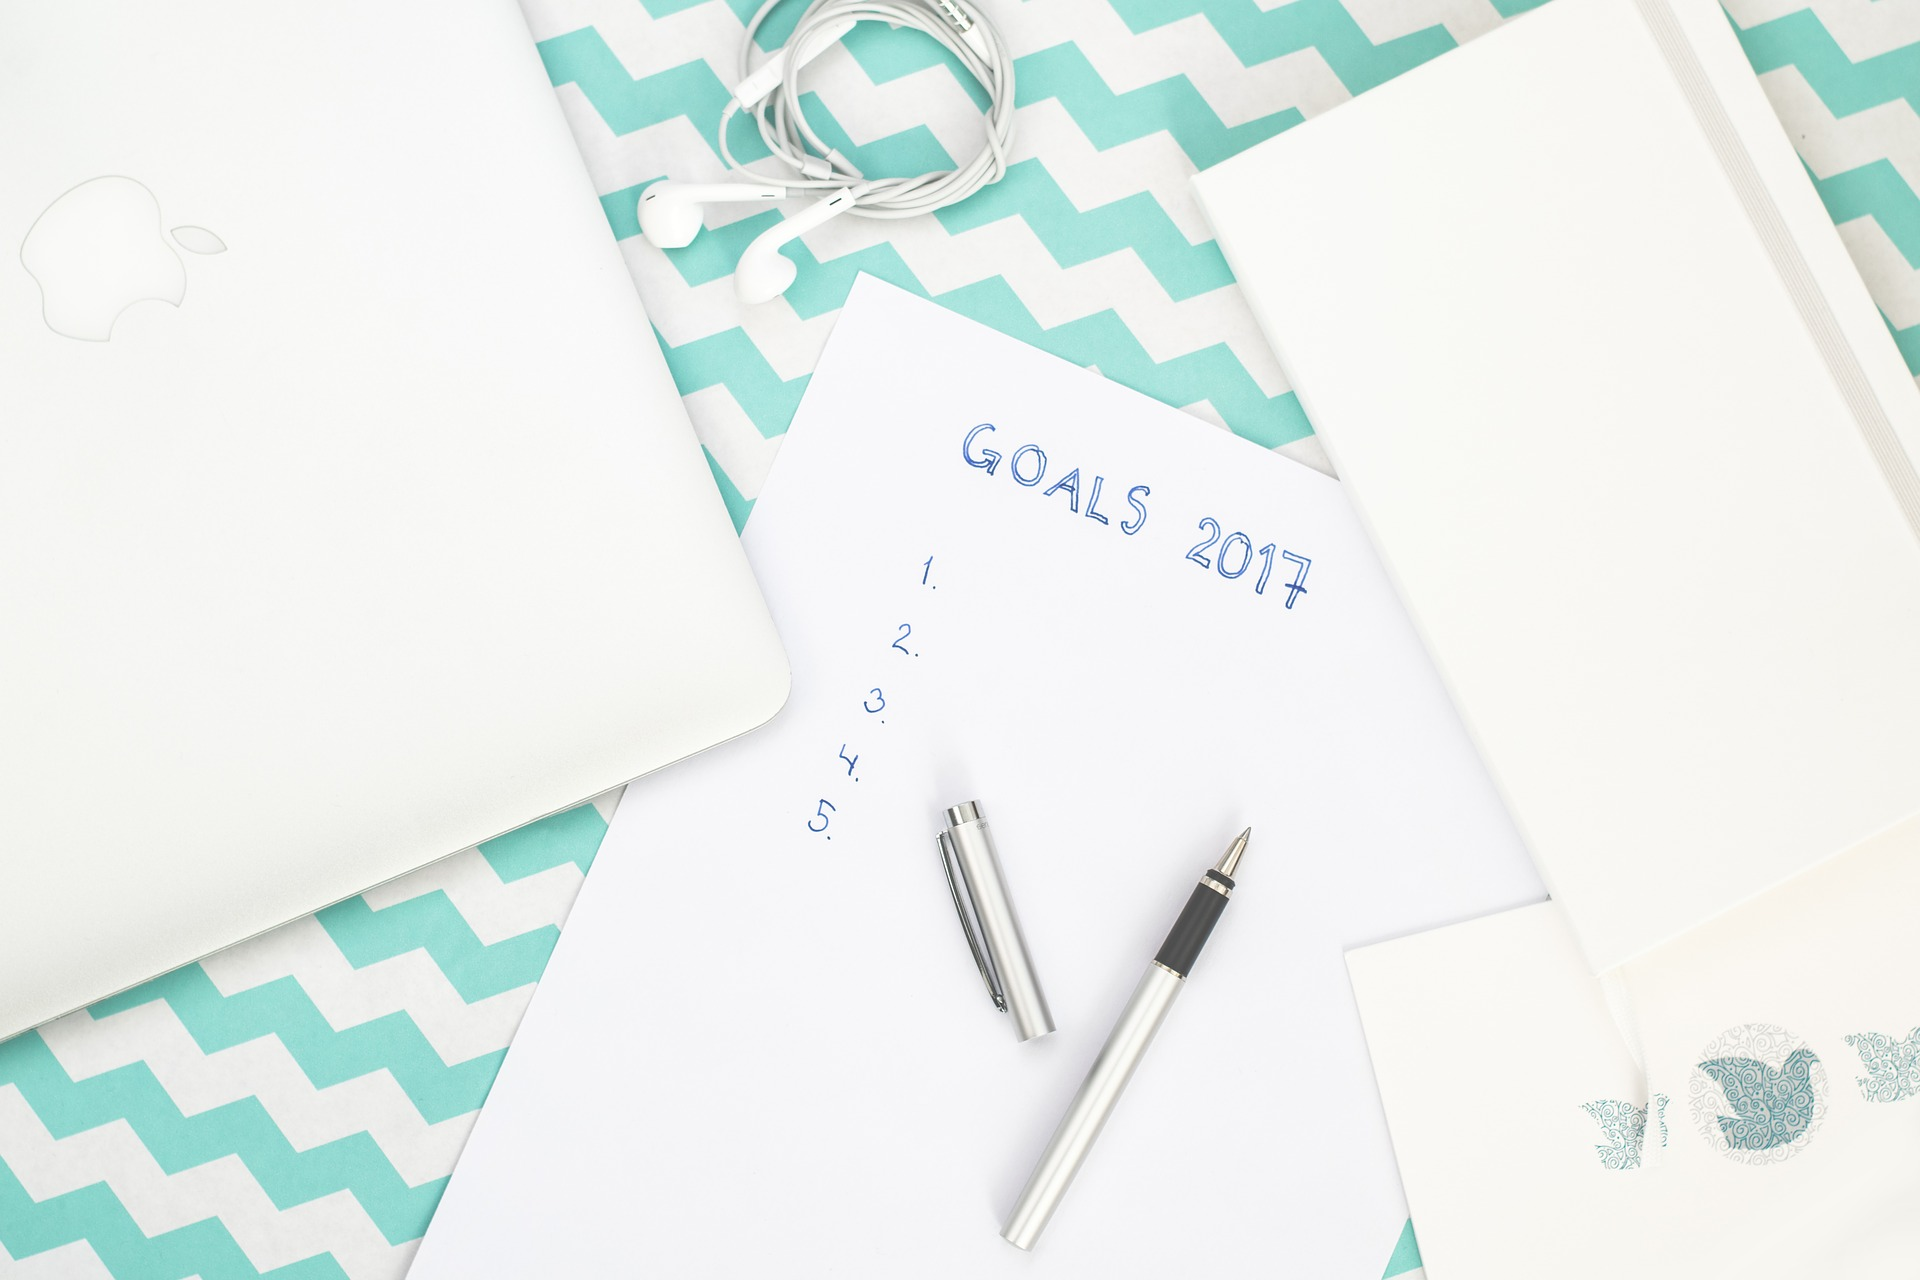 5 Financial New Year's Resolutions That Will Impact the Rest of Your Life